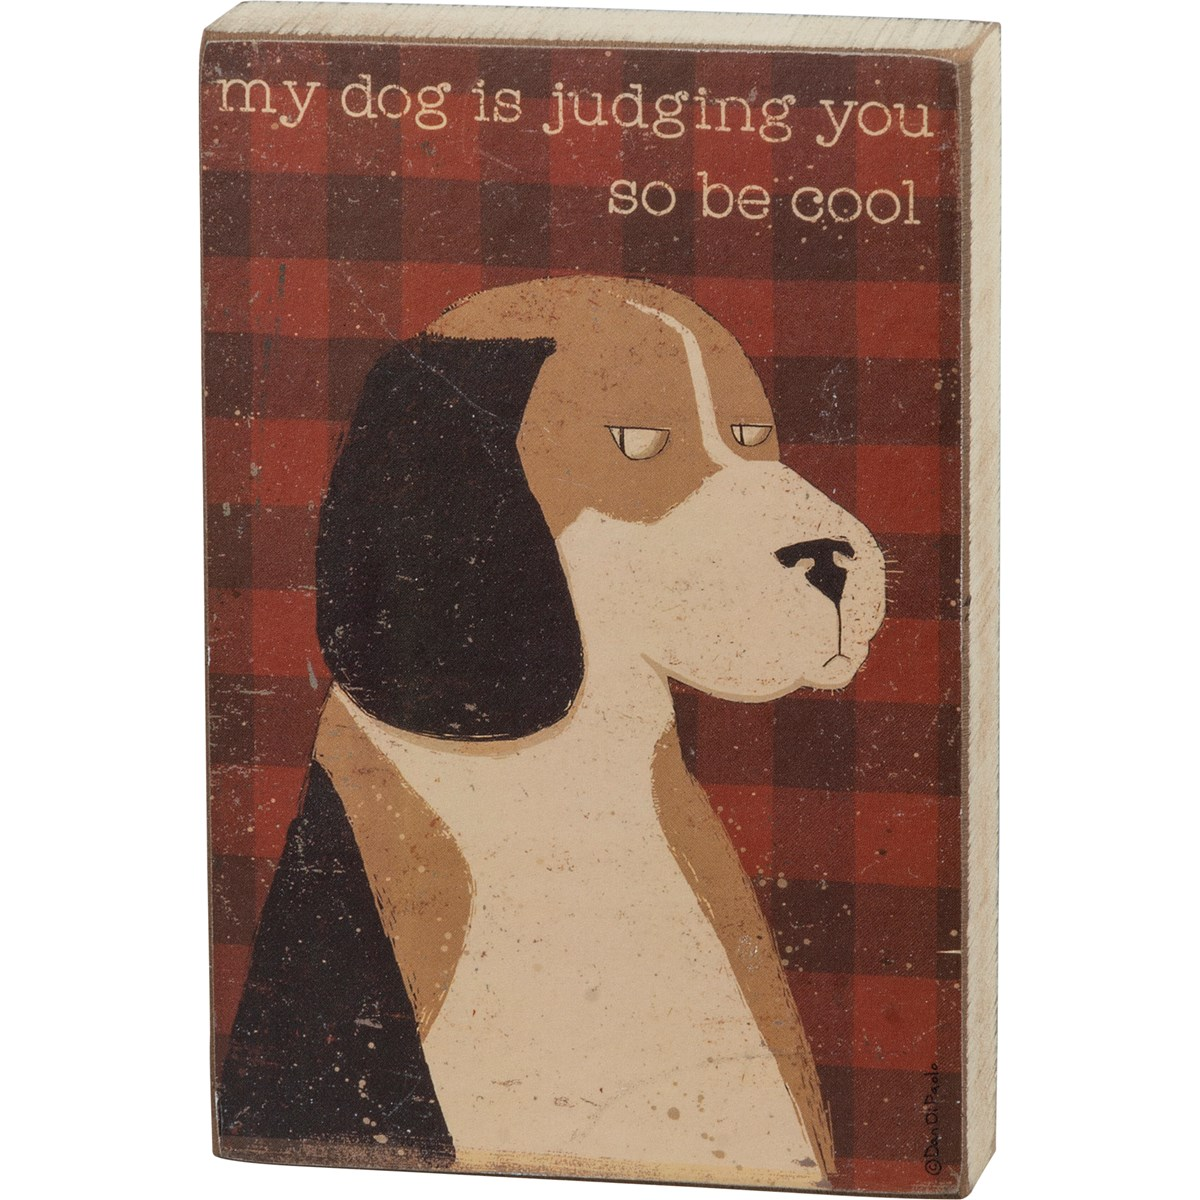 "Block Sign - My Dog Is Judging You So Be Cool - 4"" x 6"" x 1"" - Wood, Paper"